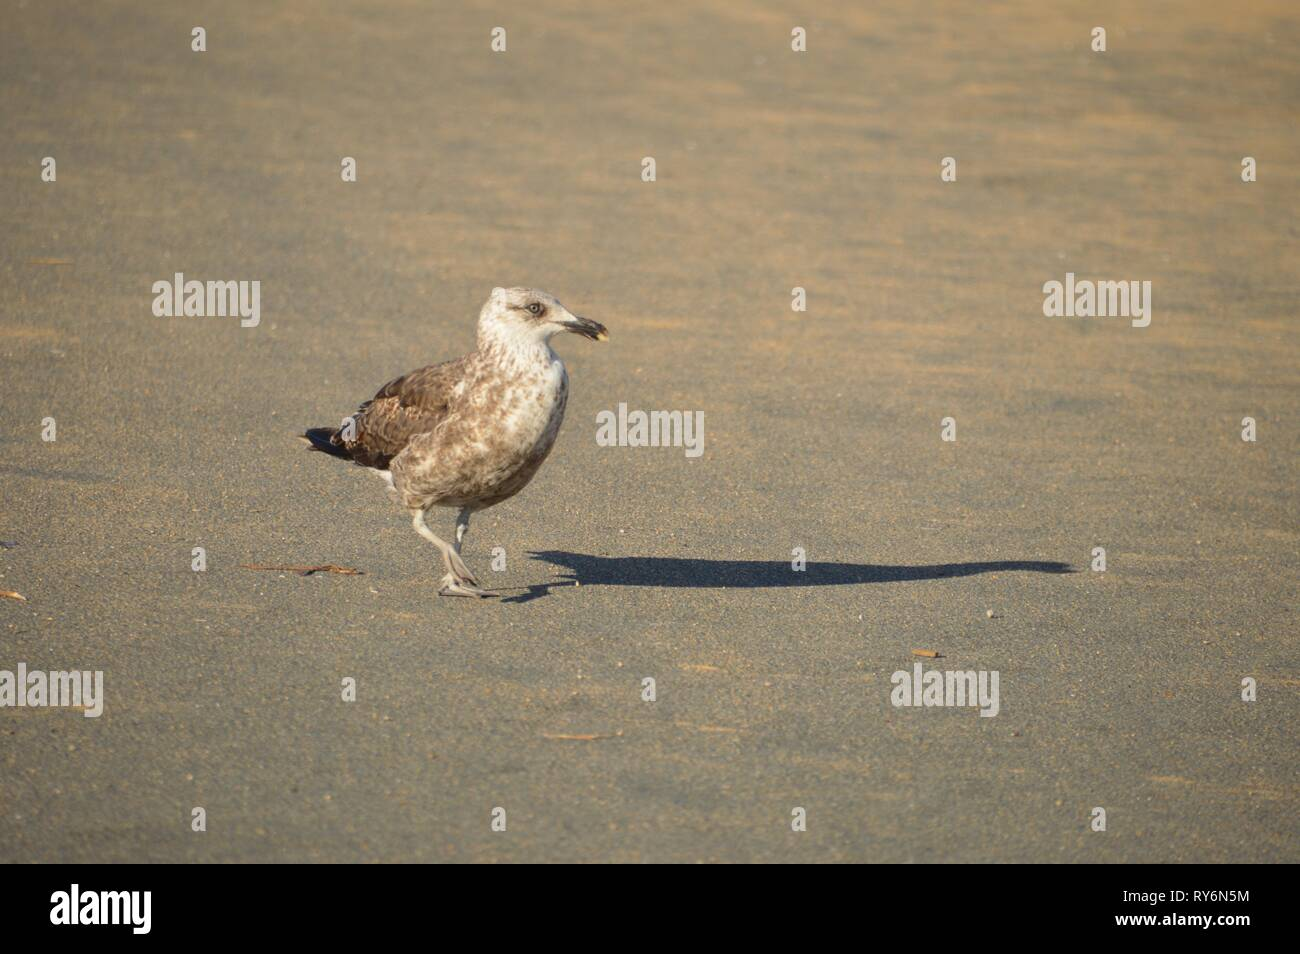 young seagull walking on the beach - Stock Image